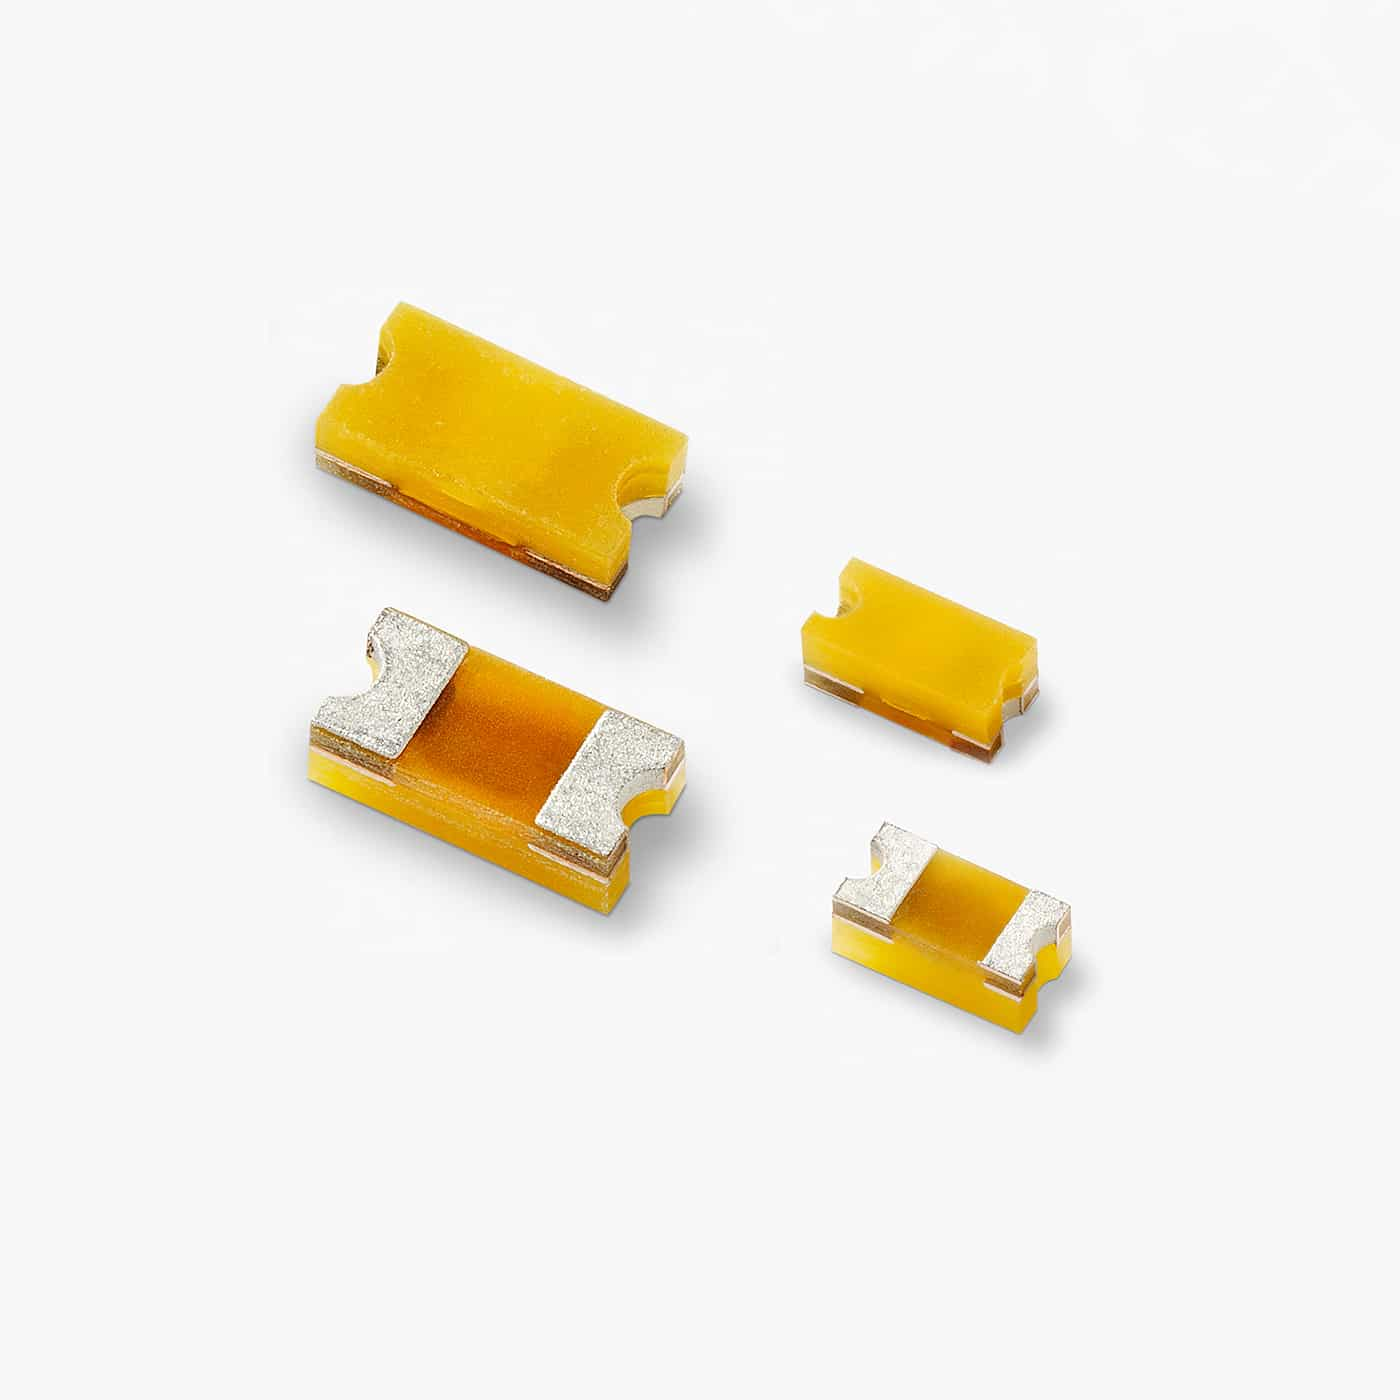 Compact Auto-Grade ESD Suppressors from Littelfuse Protects Against Transients up to 30kV